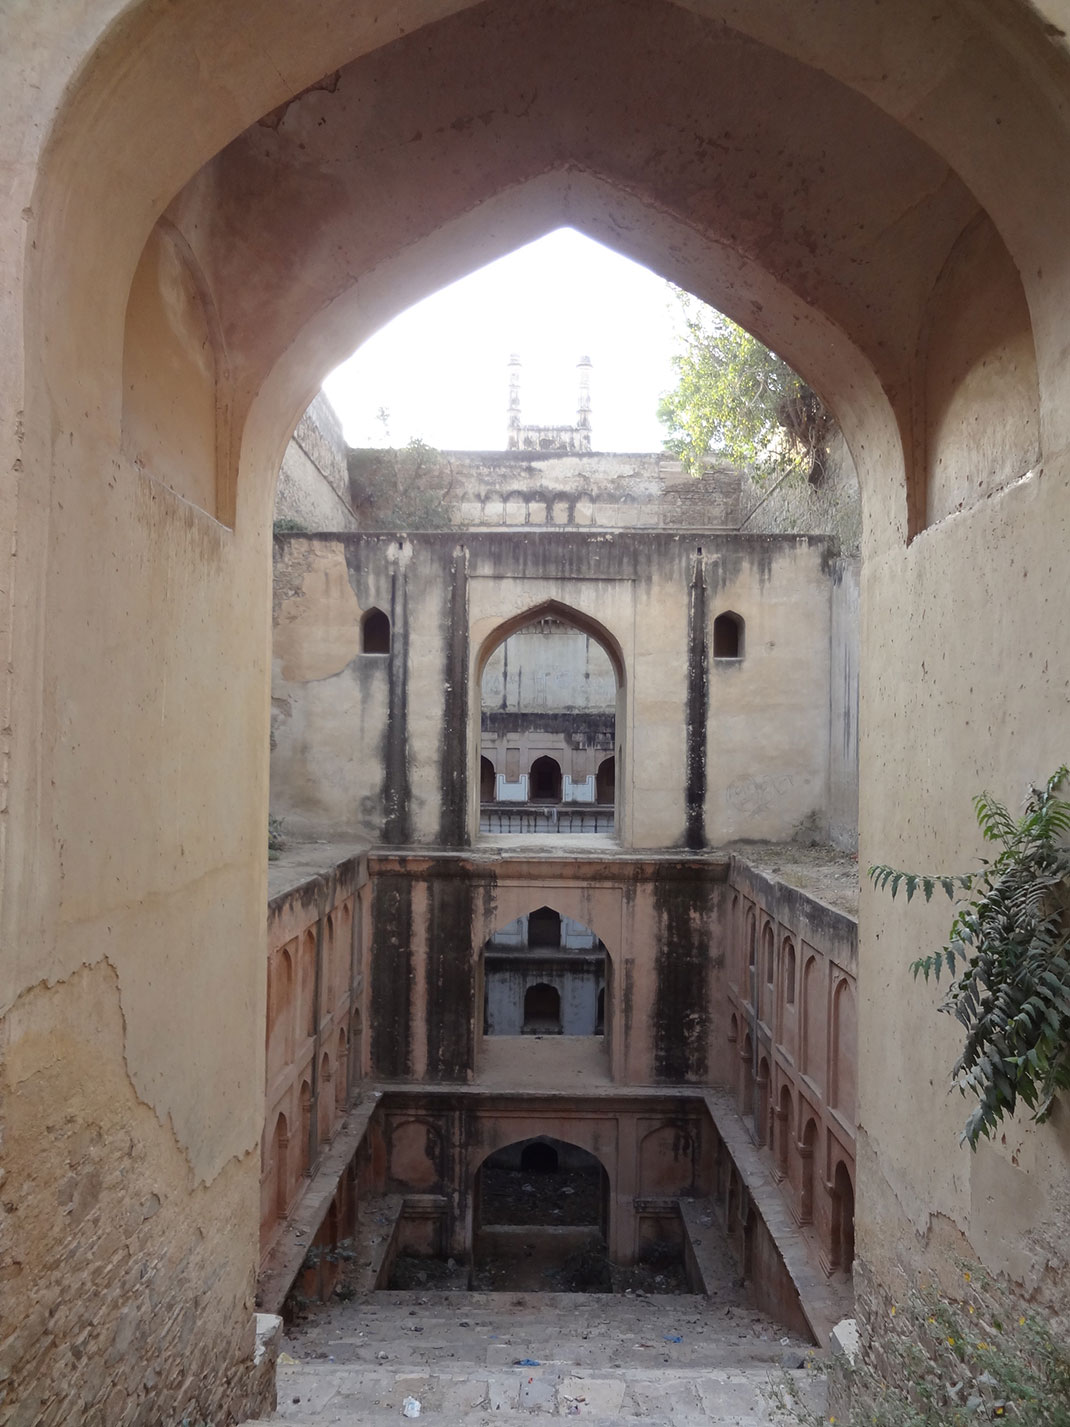 Admire These 2000 Year Old Somptous Buildings In India Destined To Disappear-21